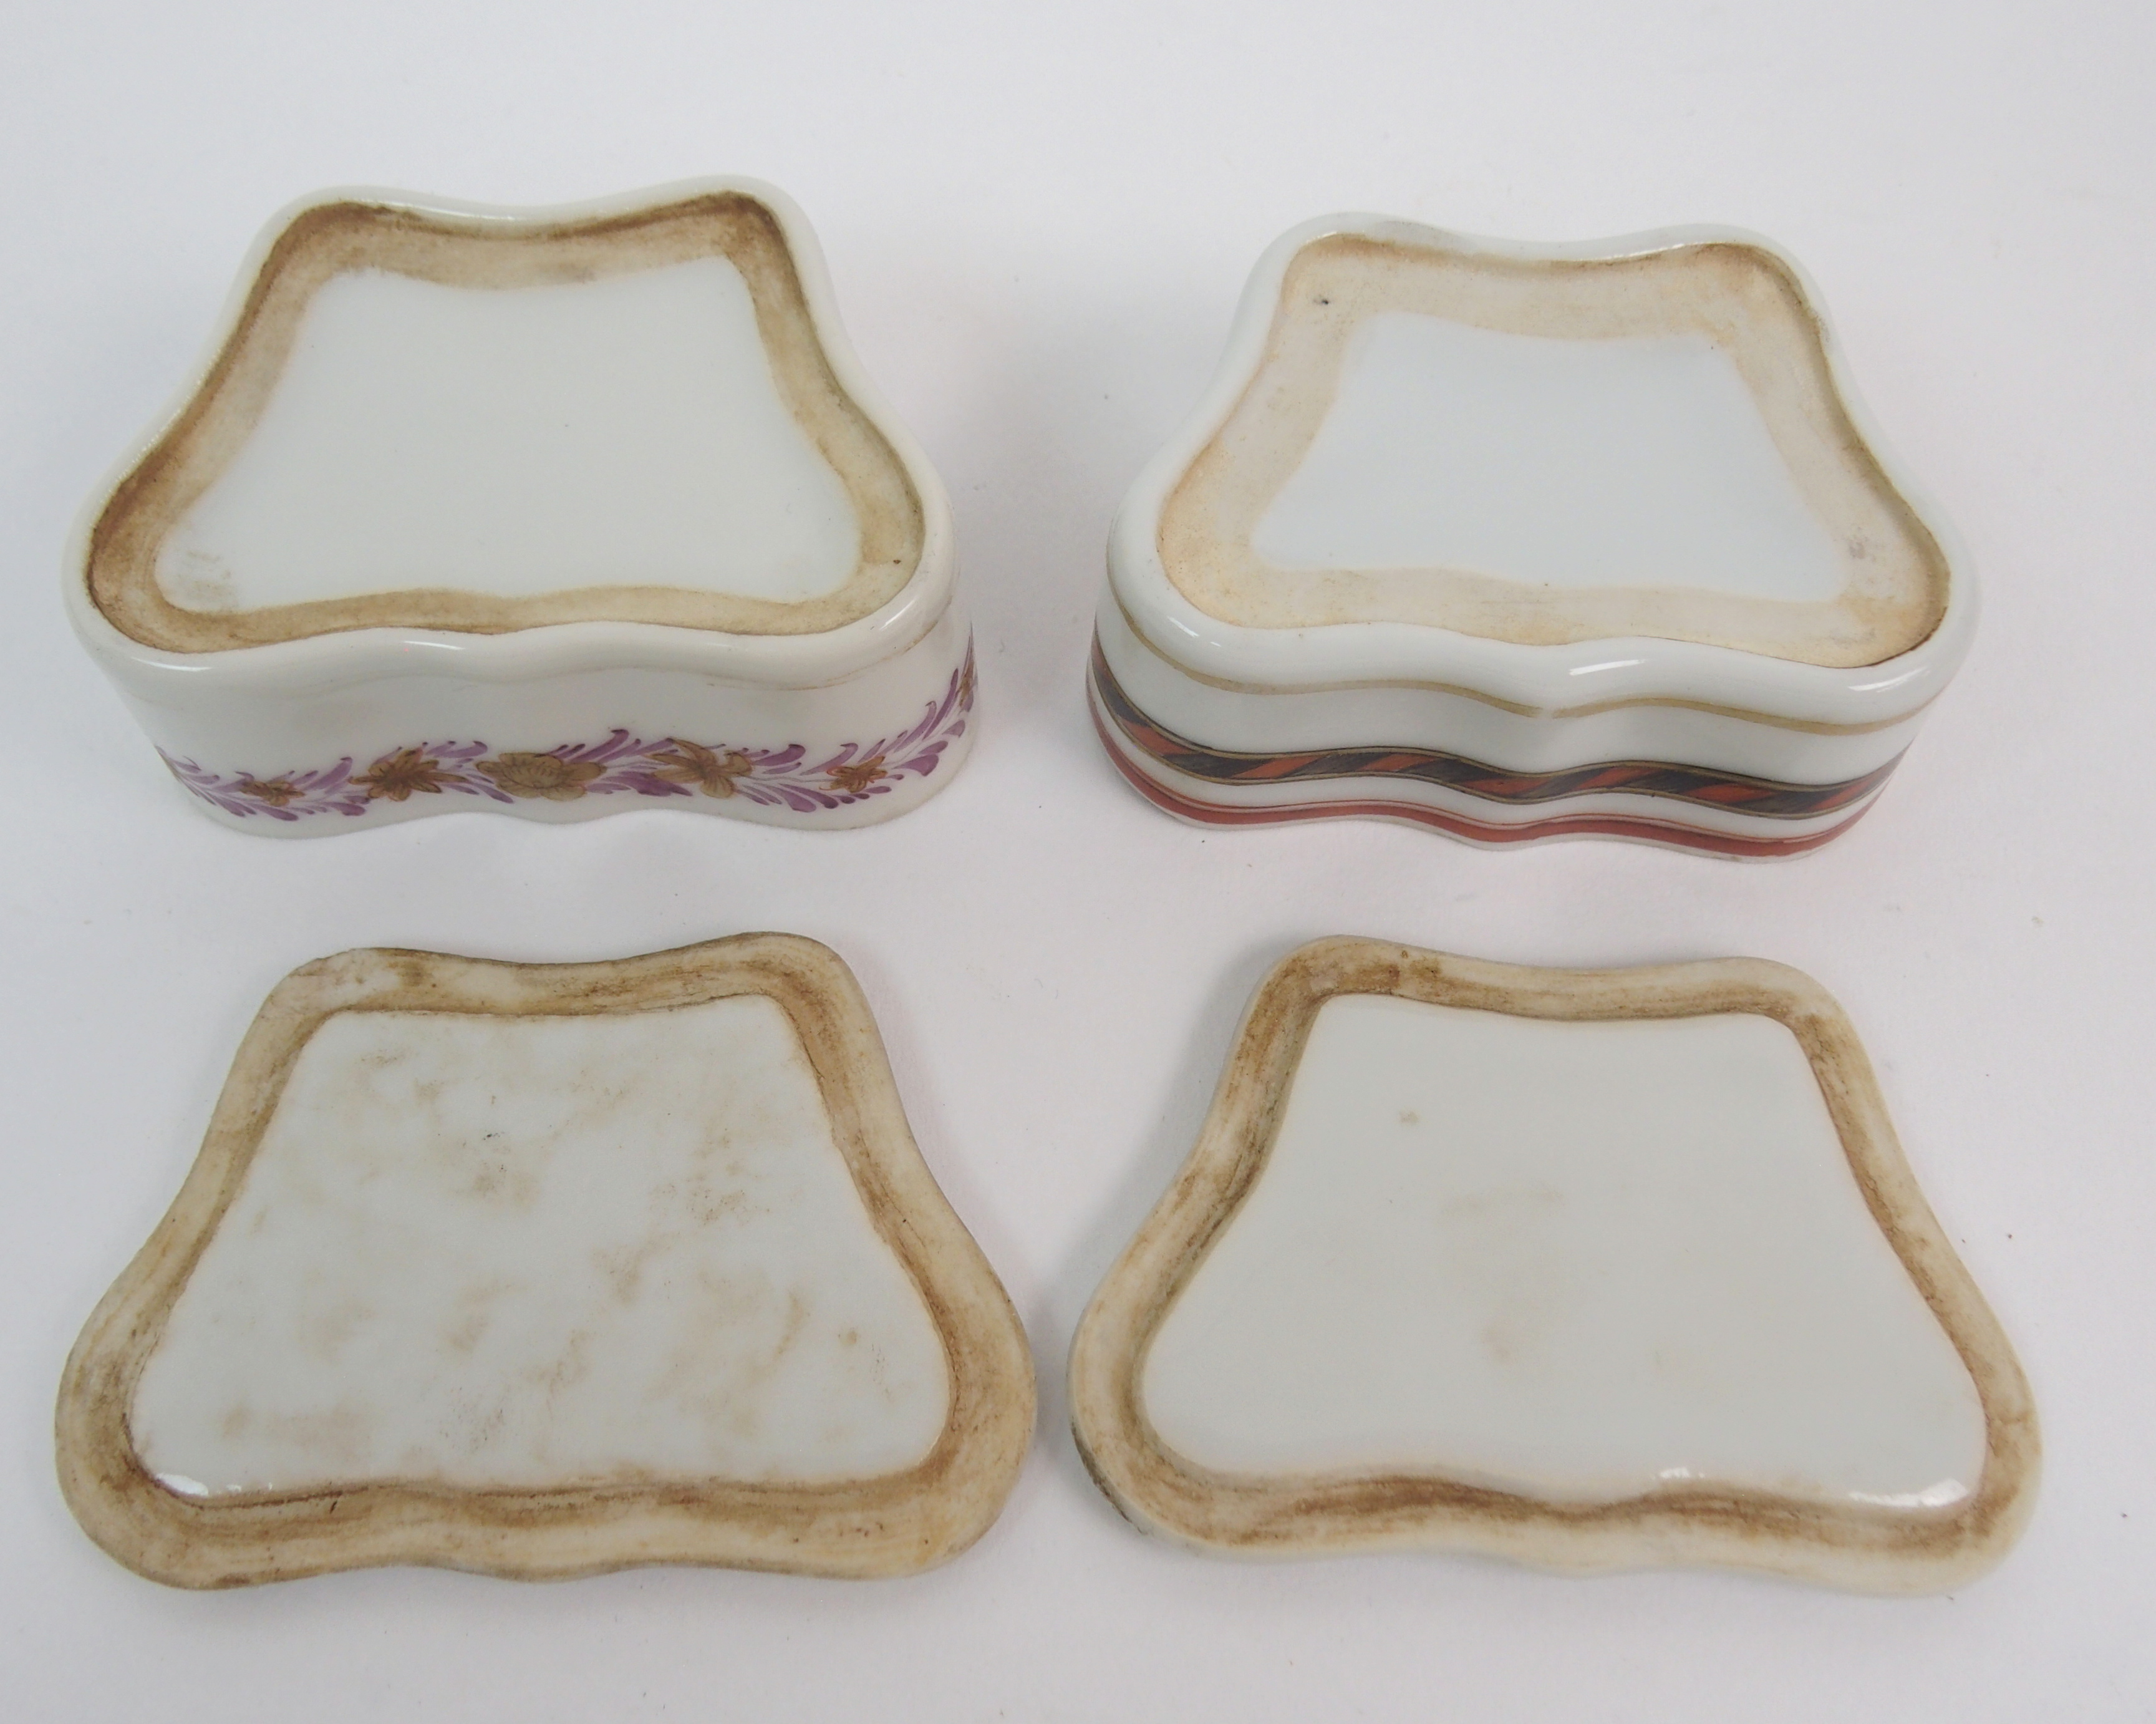 Lot 14 - A CHINESE SET OF BONE OPIUM SCALES with metal weight and pans within a boxwood case, 43cm long and